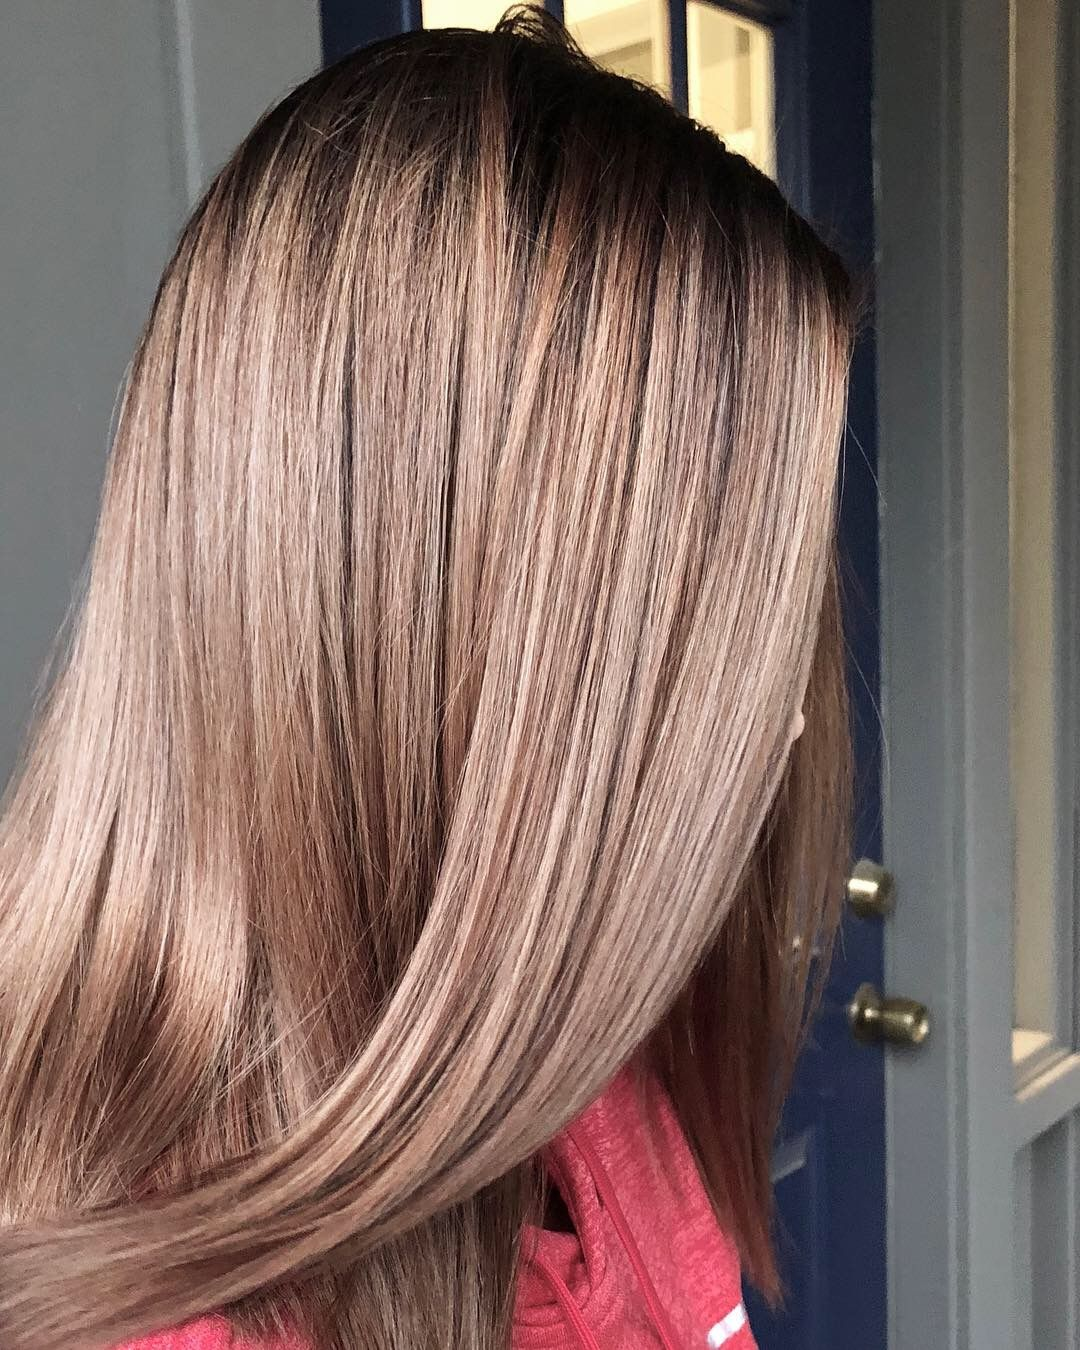 Pin On My Hair Formulas And Pictures